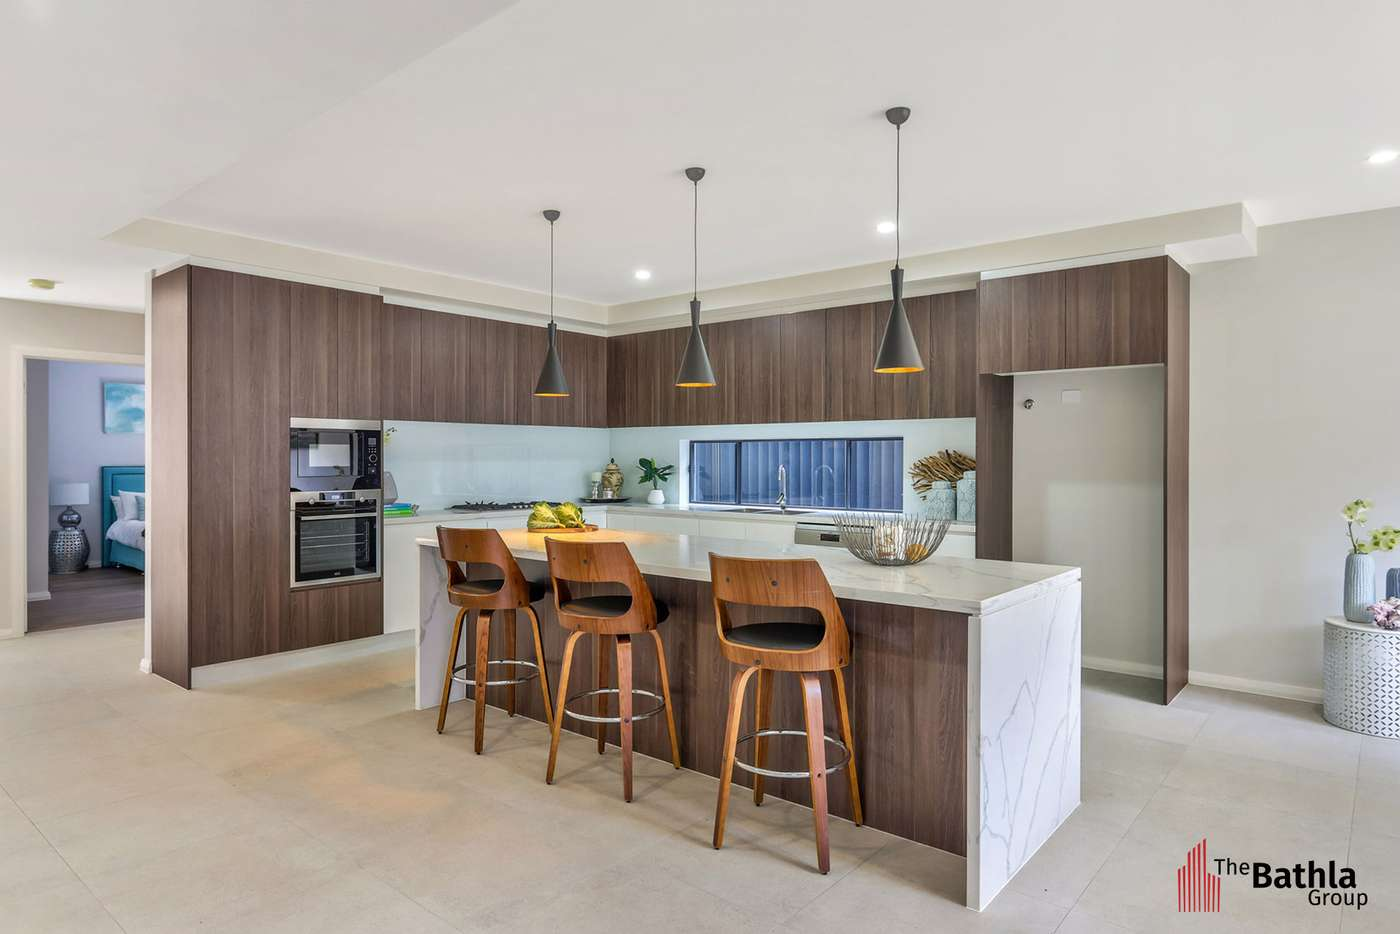 Fifth view of Homely house listing, 7 Braeburn Crescent, Stanhope Gardens NSW 2768